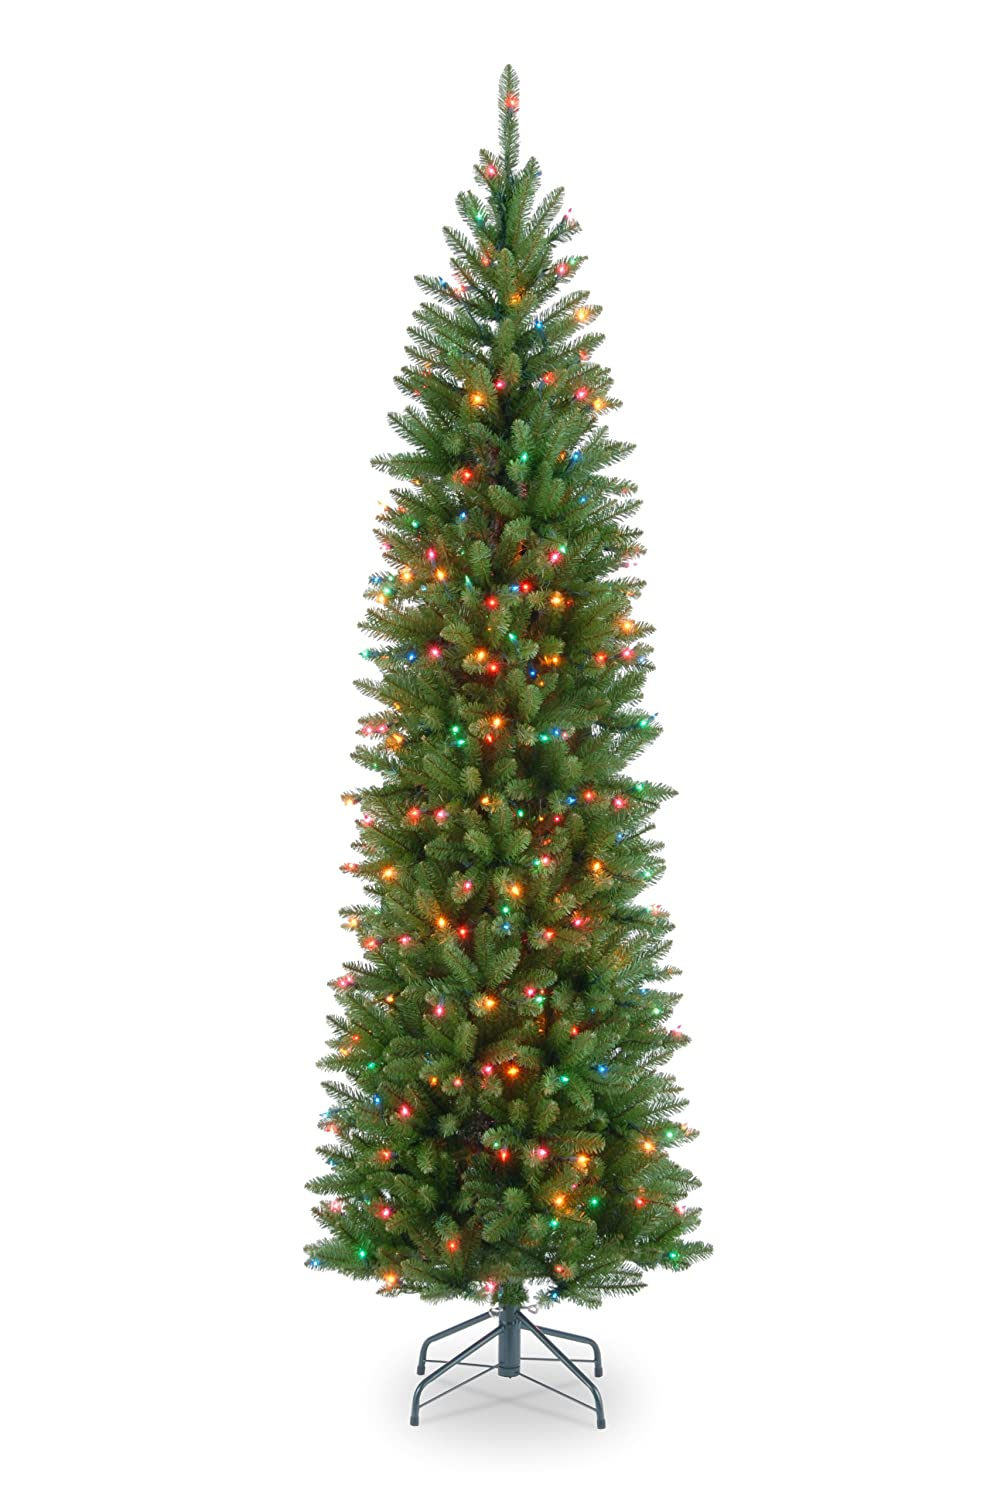 Amazon.com: National Tree 7.5 Foot Kingswood Fir Pencil Tree with ...